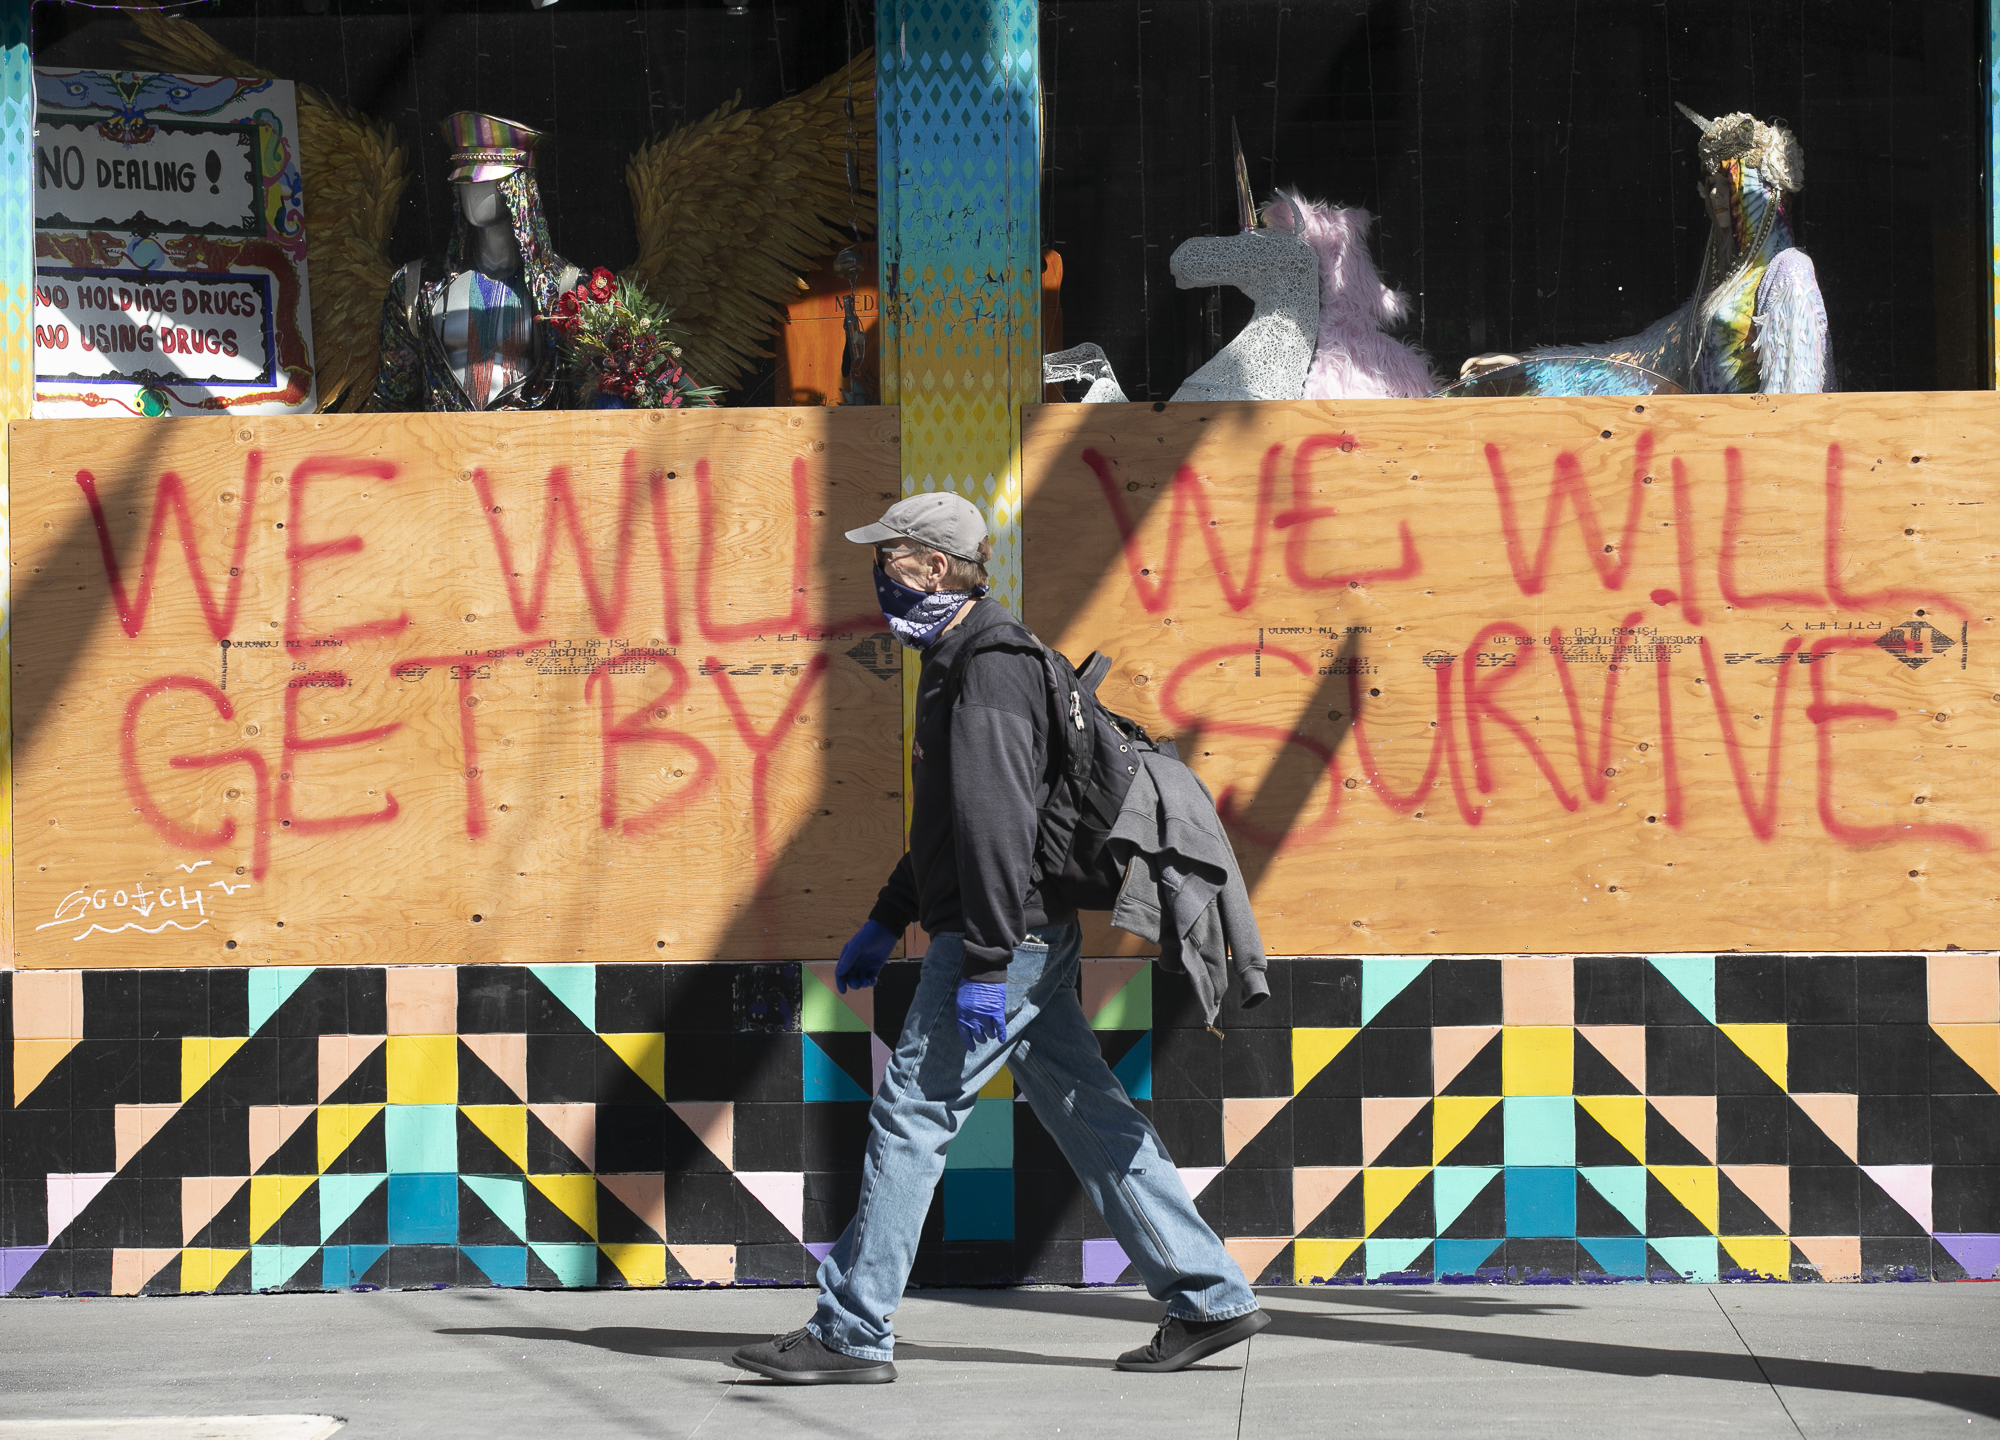 A man wearing disposable gloves and a bandana over his face walks past a boarded up shop on Haight Street in San Francisco on April 7, 2020. California is entering the fourth week of sheltering in place to limit the spread of the novel coronavirus, and the number of Californians hospitalized and those in ICUs with COVID-19 is starting to edge up only slightly. Photo by Anne Wernikoff for CalMatters